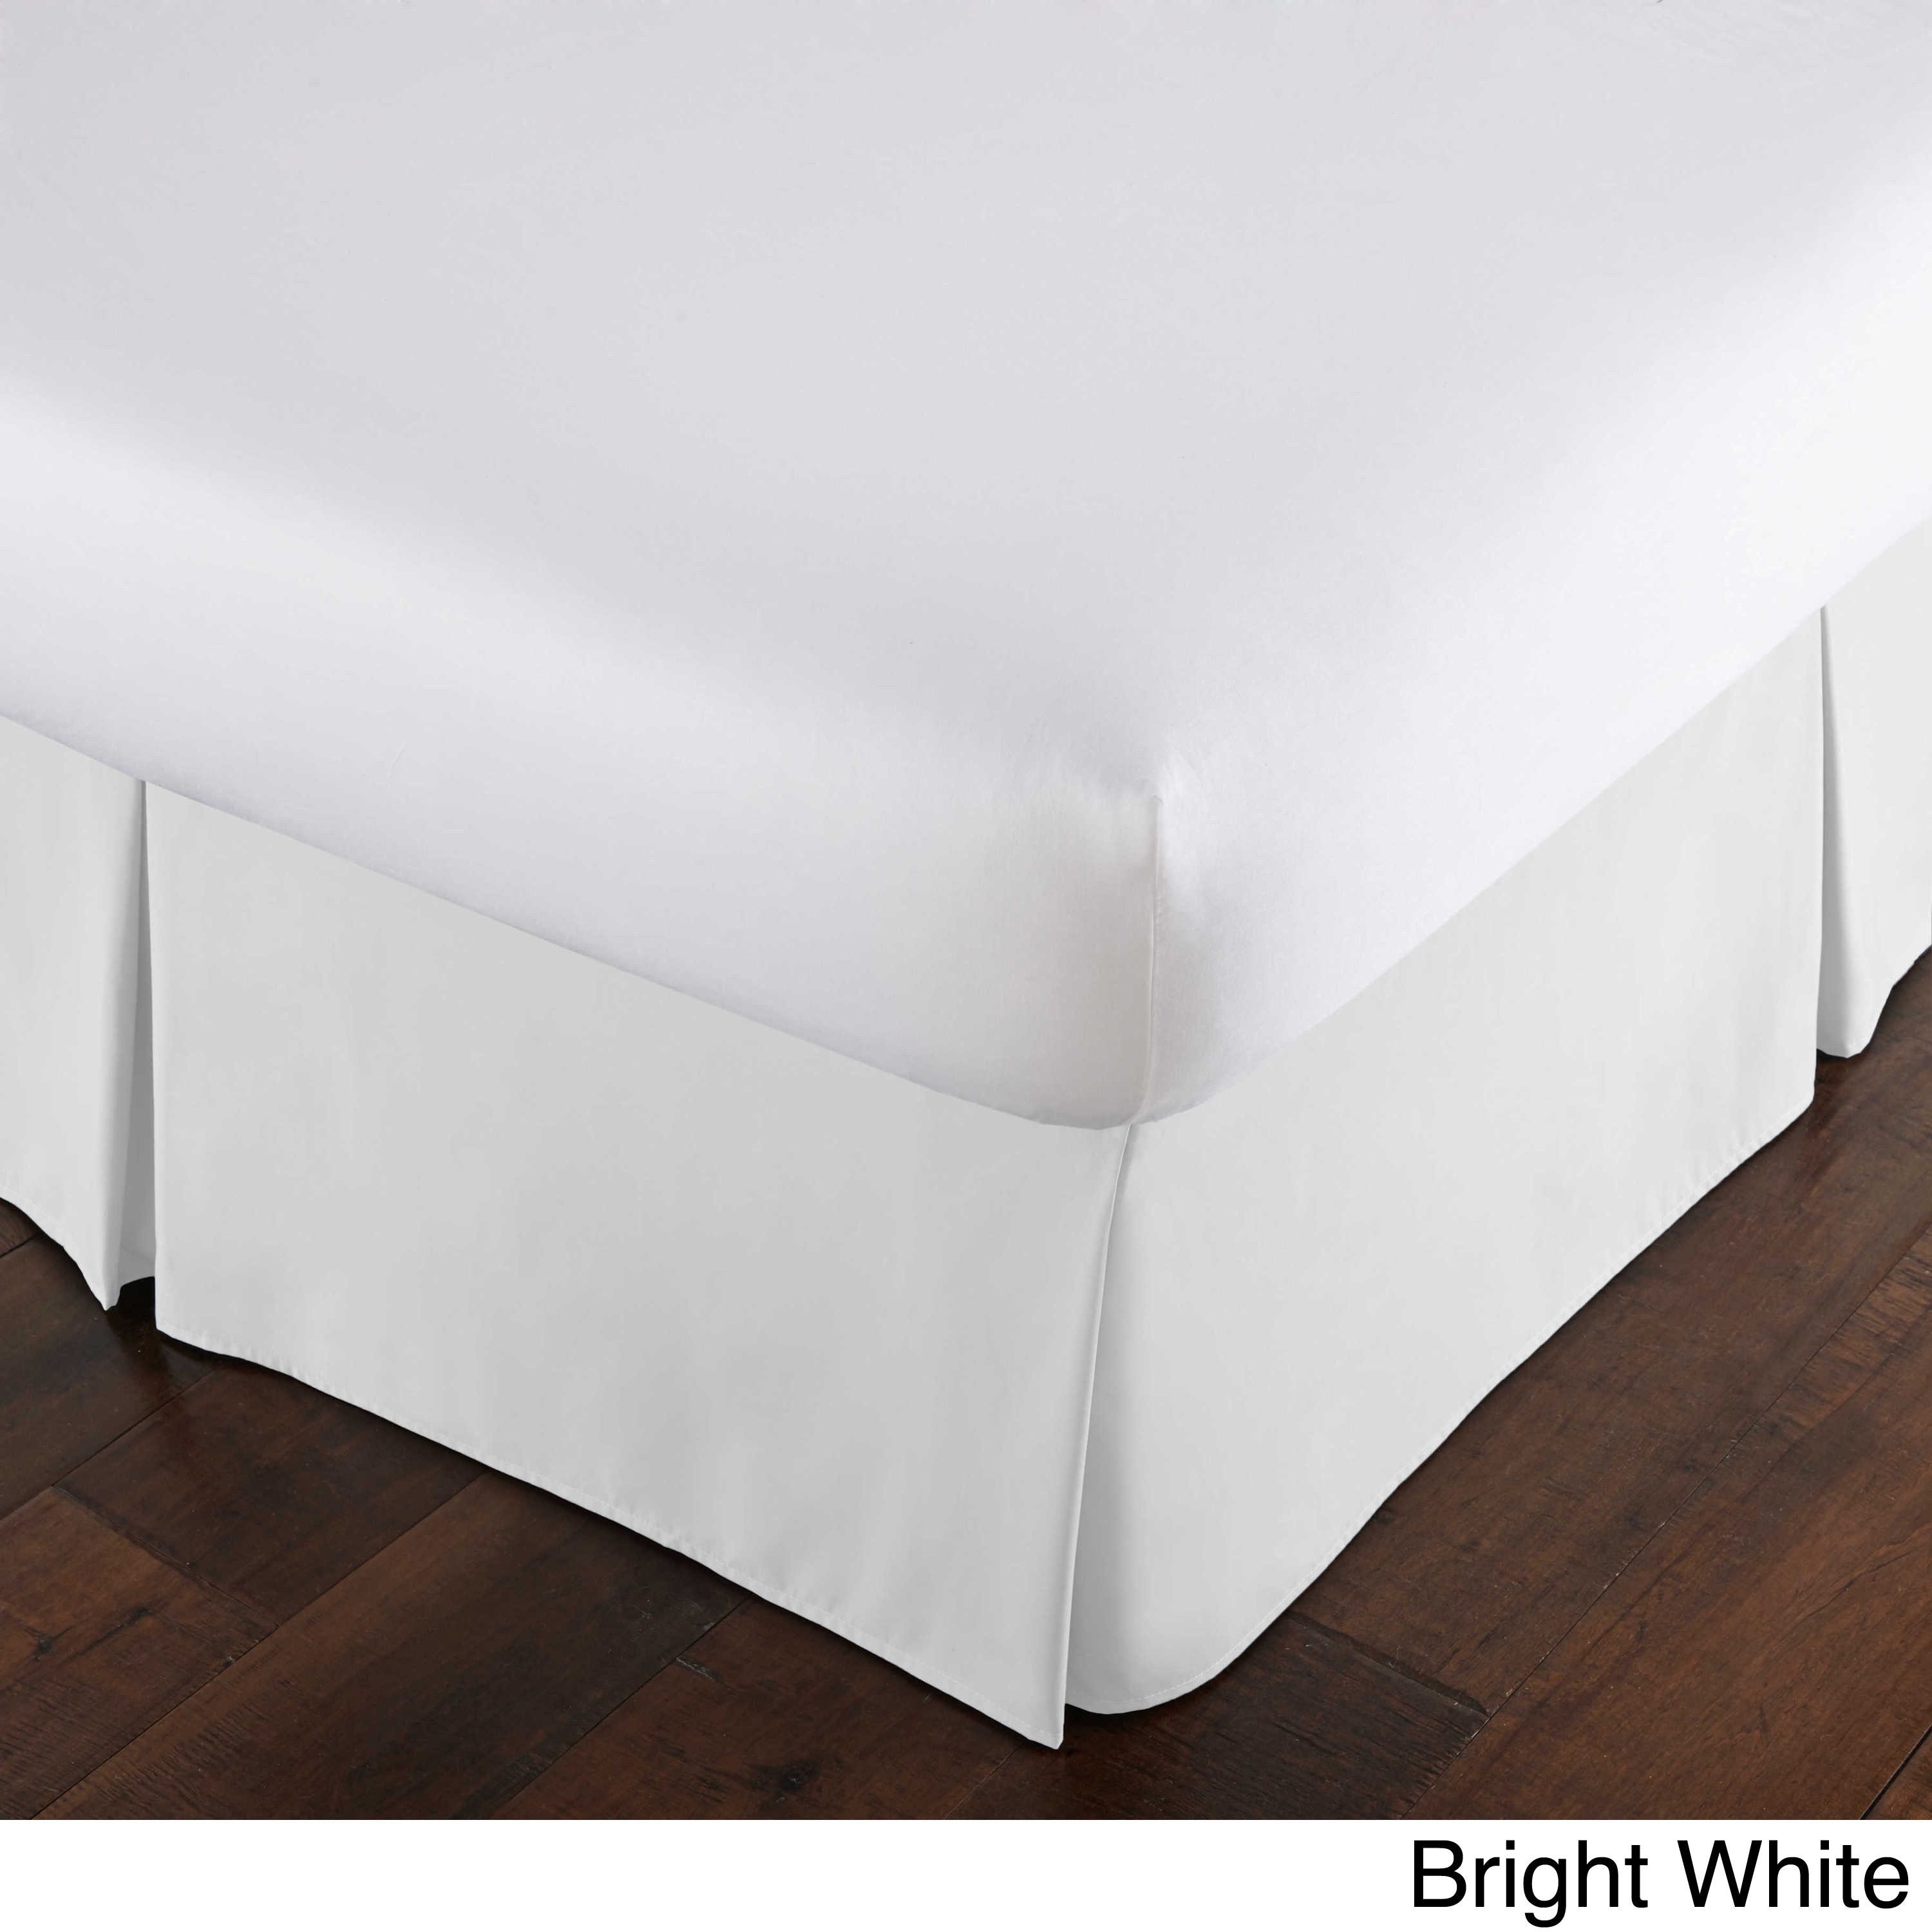 Clic 15 Inch Drop Bedskirt By Souths Fine Linens On Free Shipping Orders Over 45 12707332